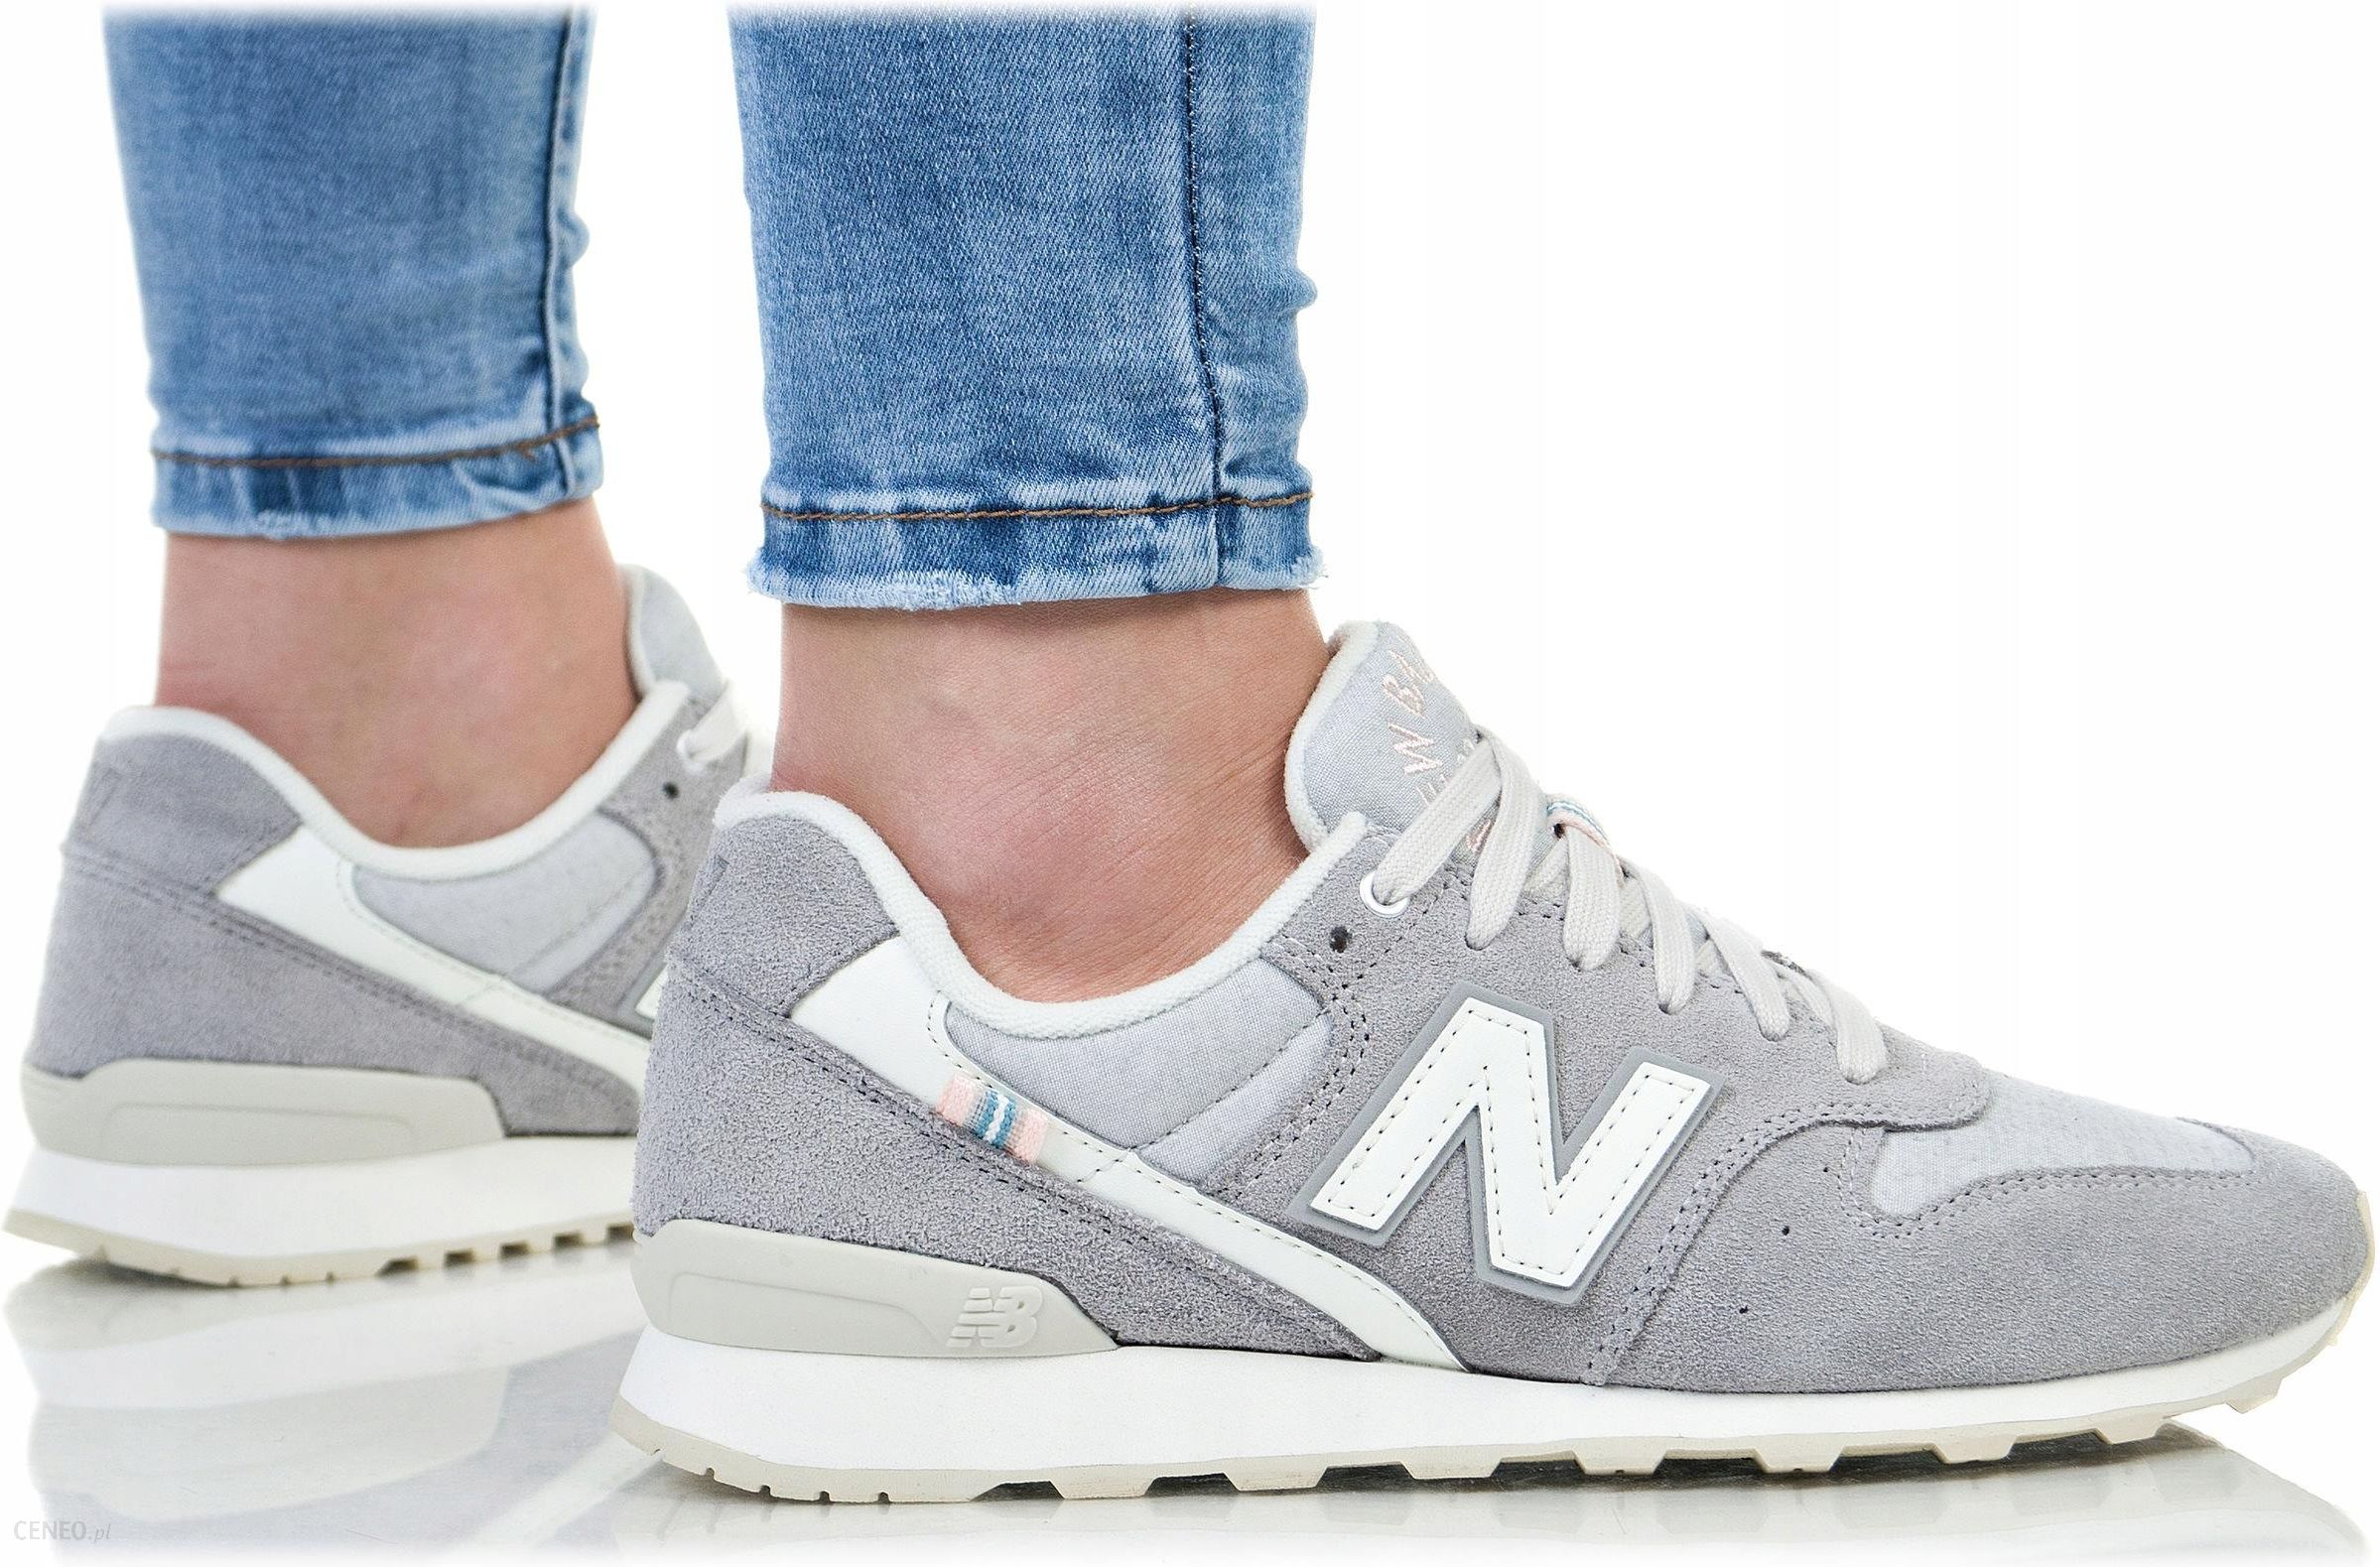 detailed pictures best cheap cute Buty New Balance 996 Damskie WR996YC Szare - Ceny i opinie - Ceneo.pl